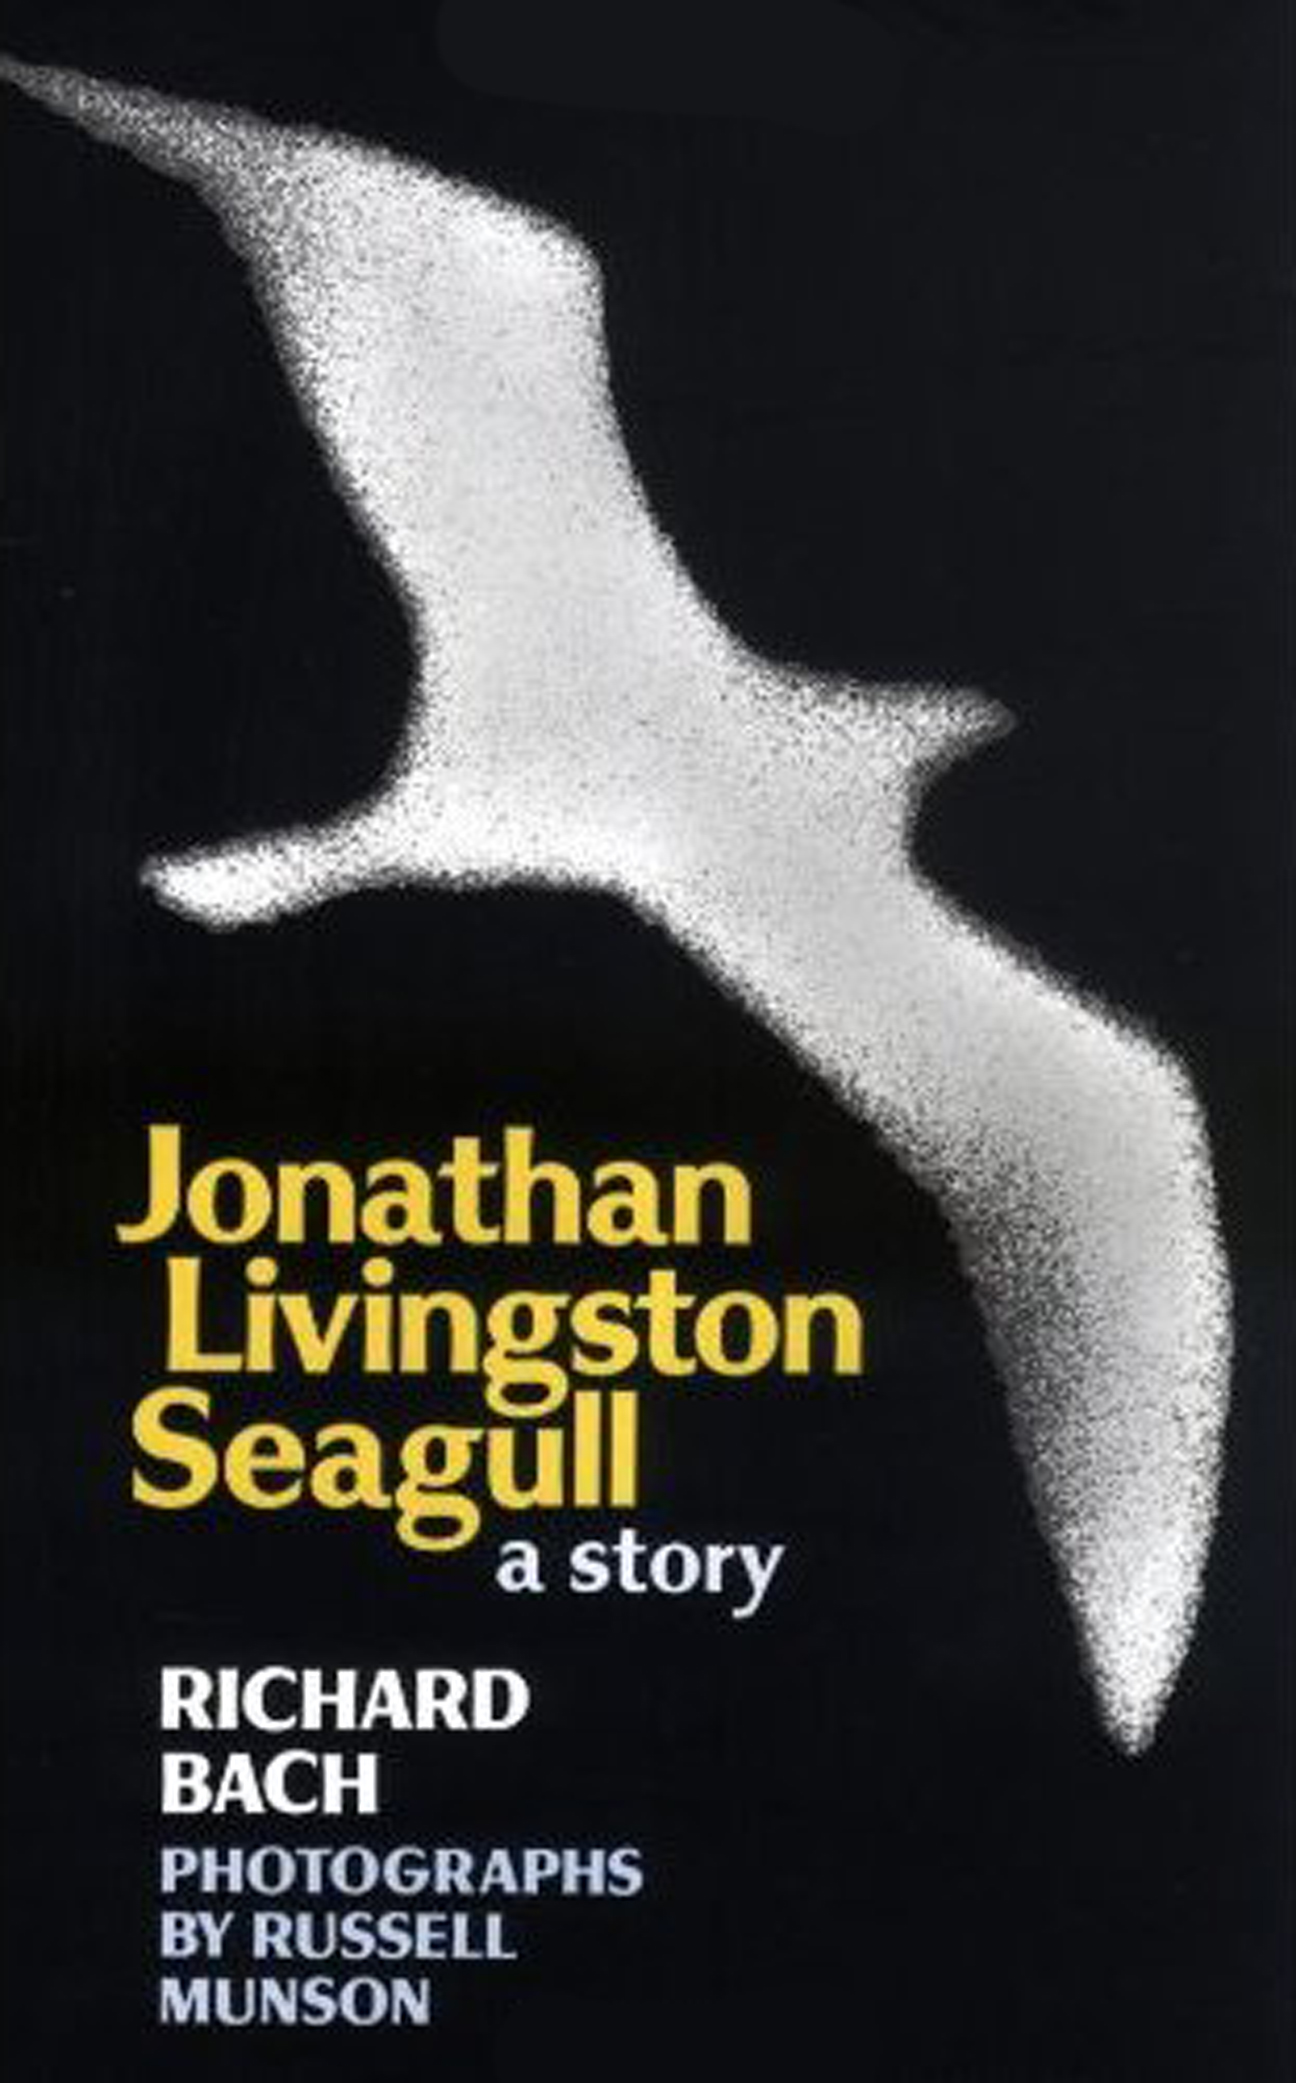 jonathan livingston seagull written by richard bach Introduction: most gulls don't bother to learn more than the simplest facts of flight  --how to get from shore to food and back again, writes author richard bach in.